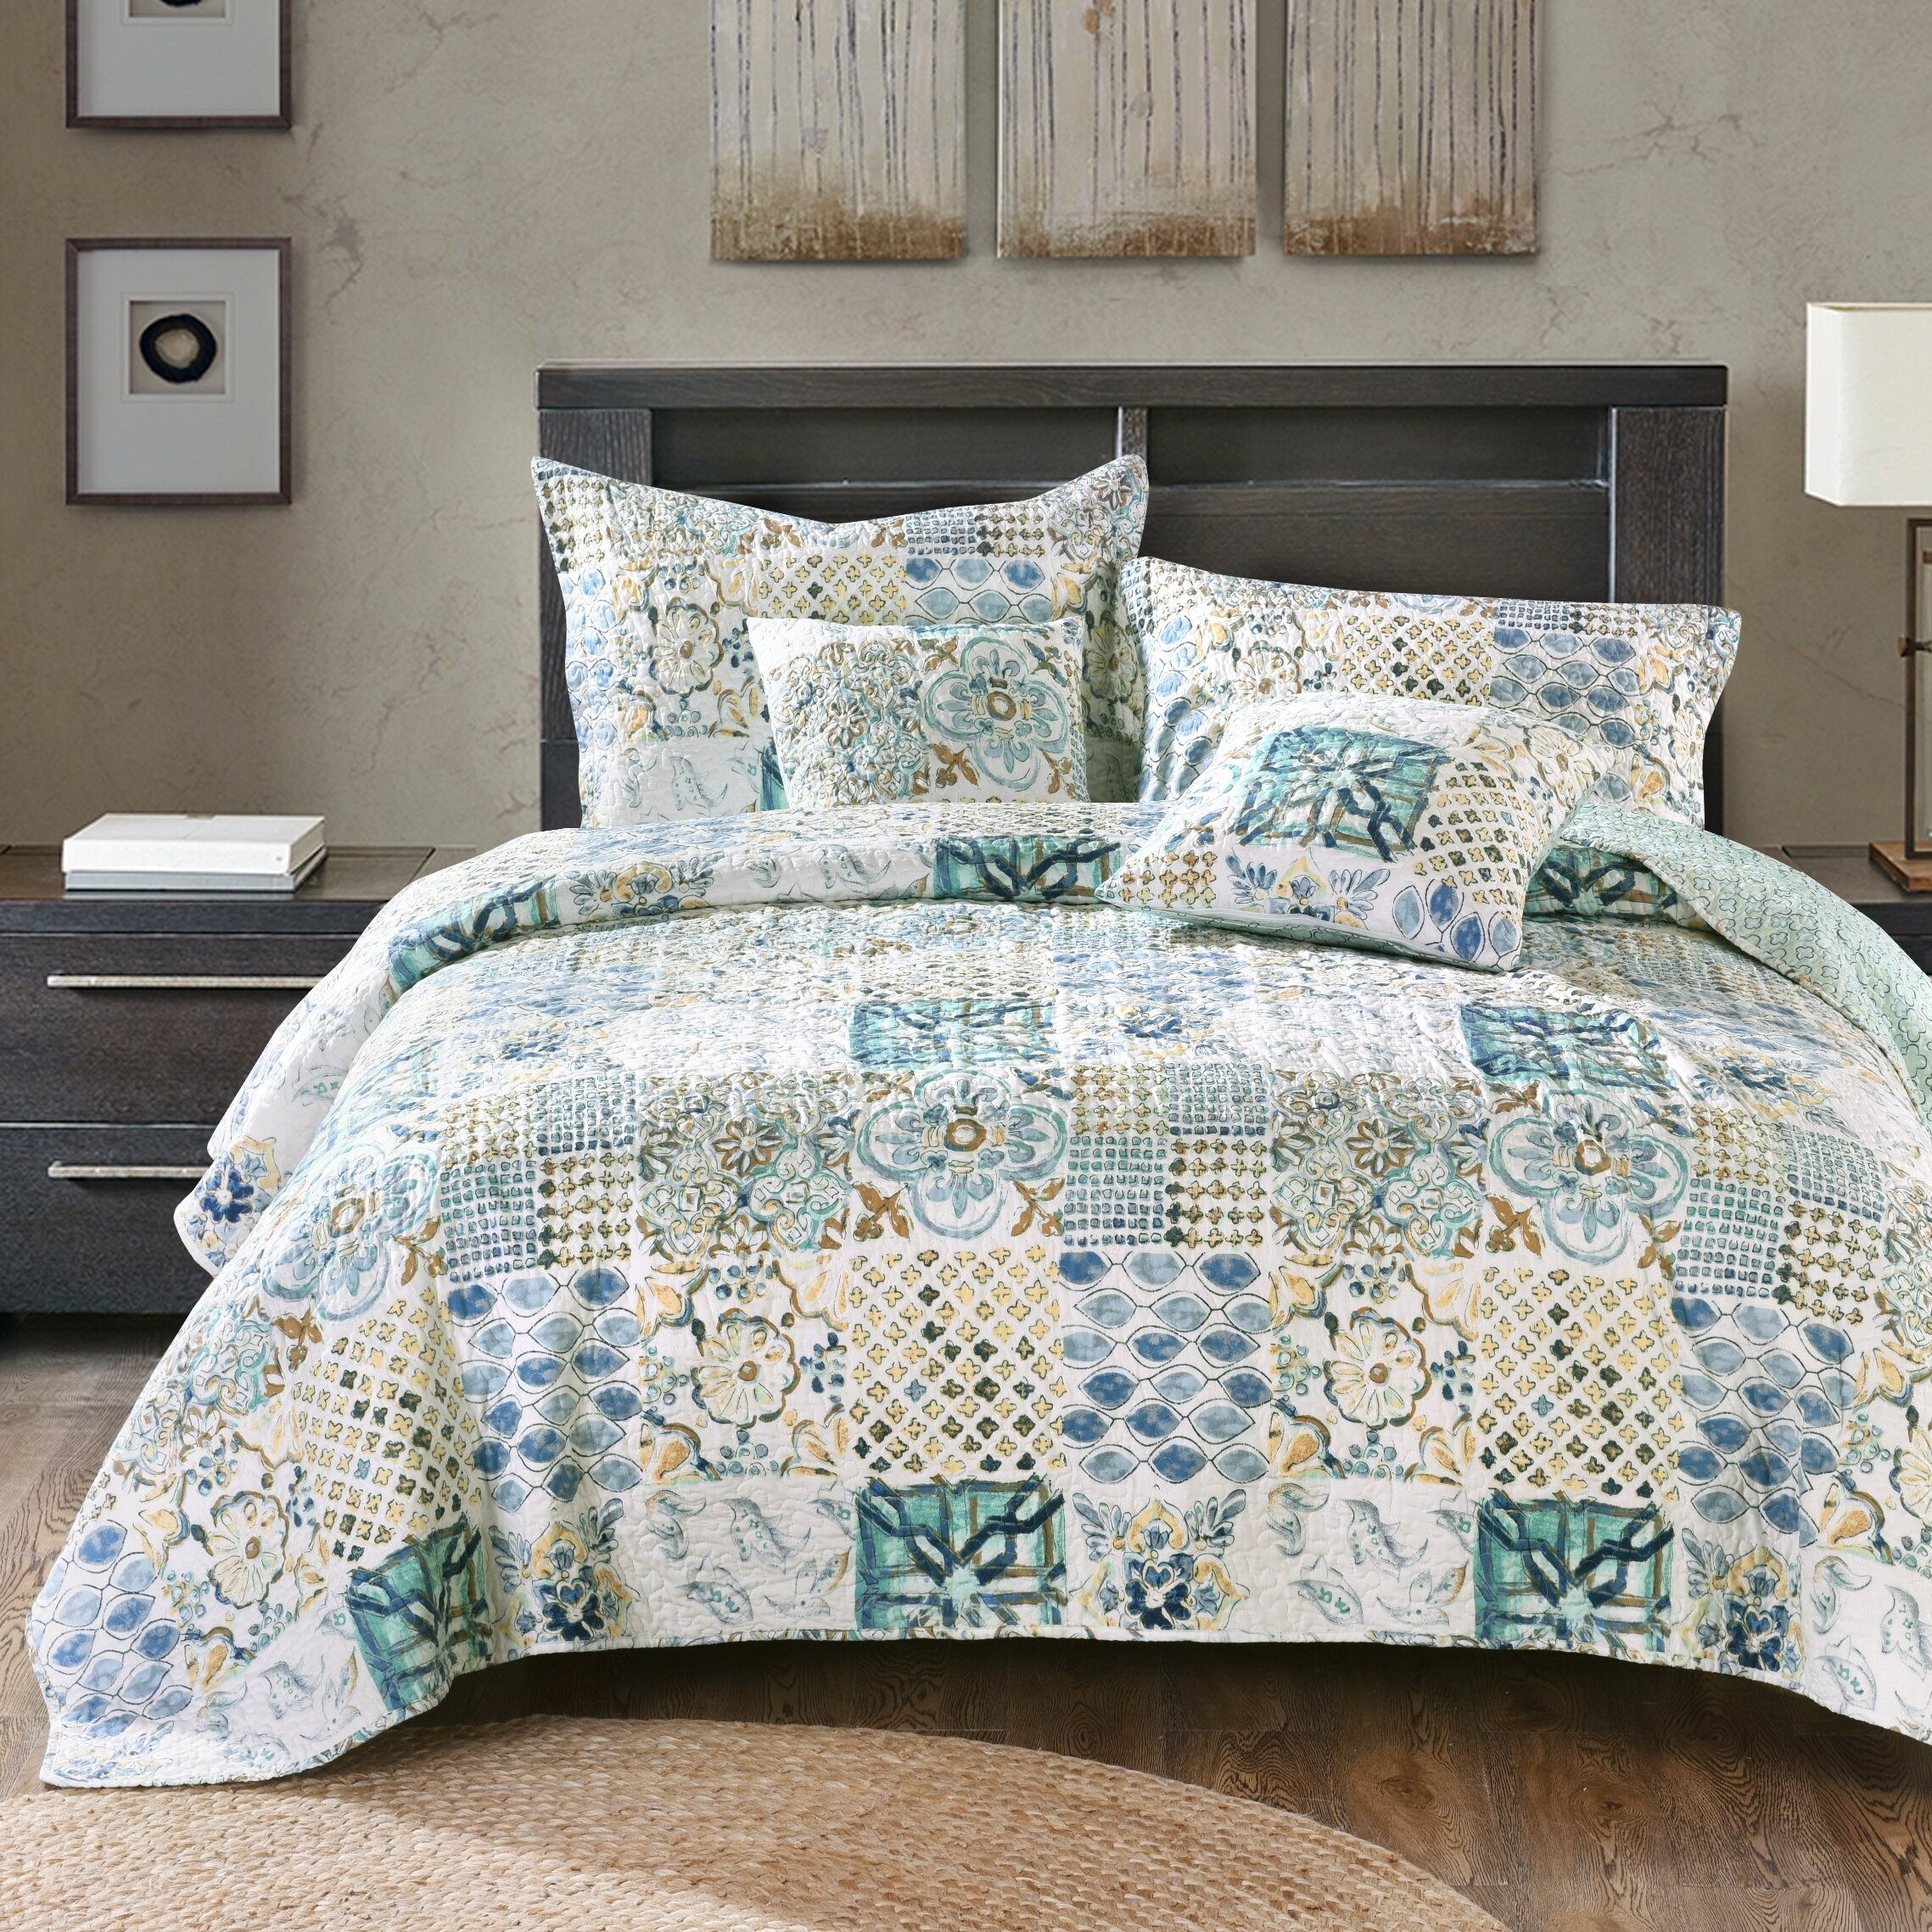 product style bedding quilt quilts and bed quilted for department primitive country skirts bedspread bedspreads folded category